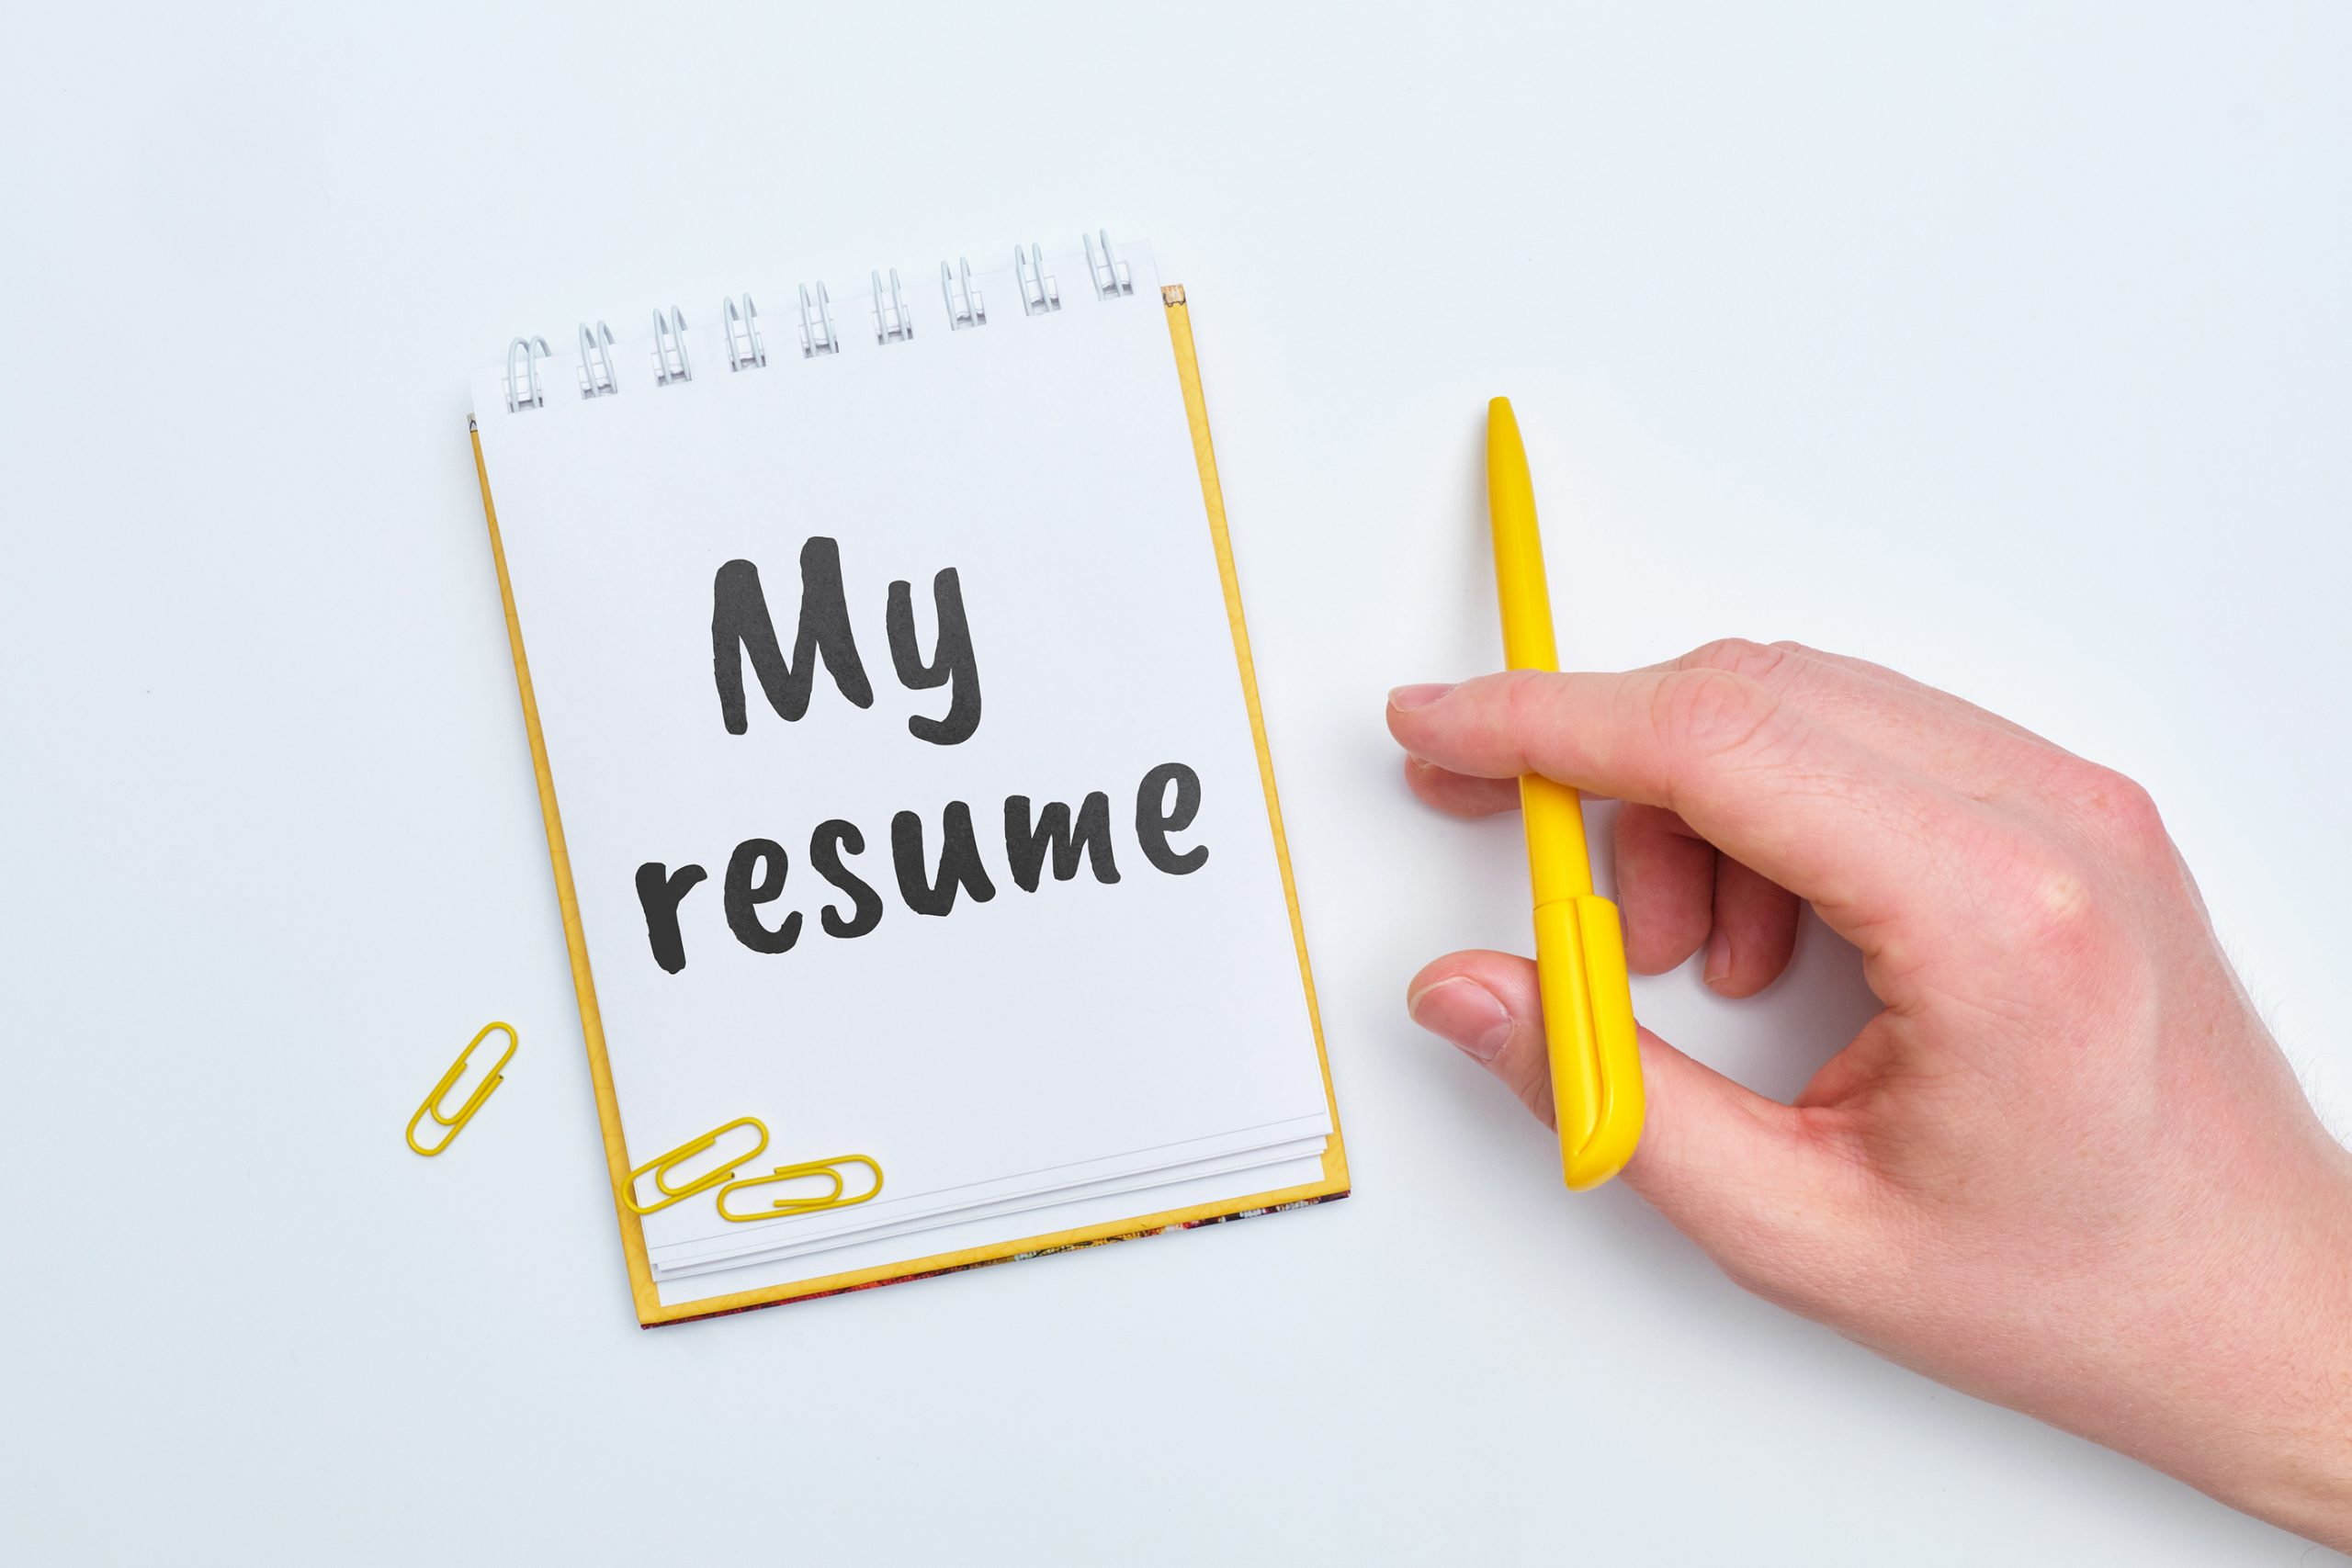 Efficient Resume Writing Service Can Help You With Finding The Perfect Job